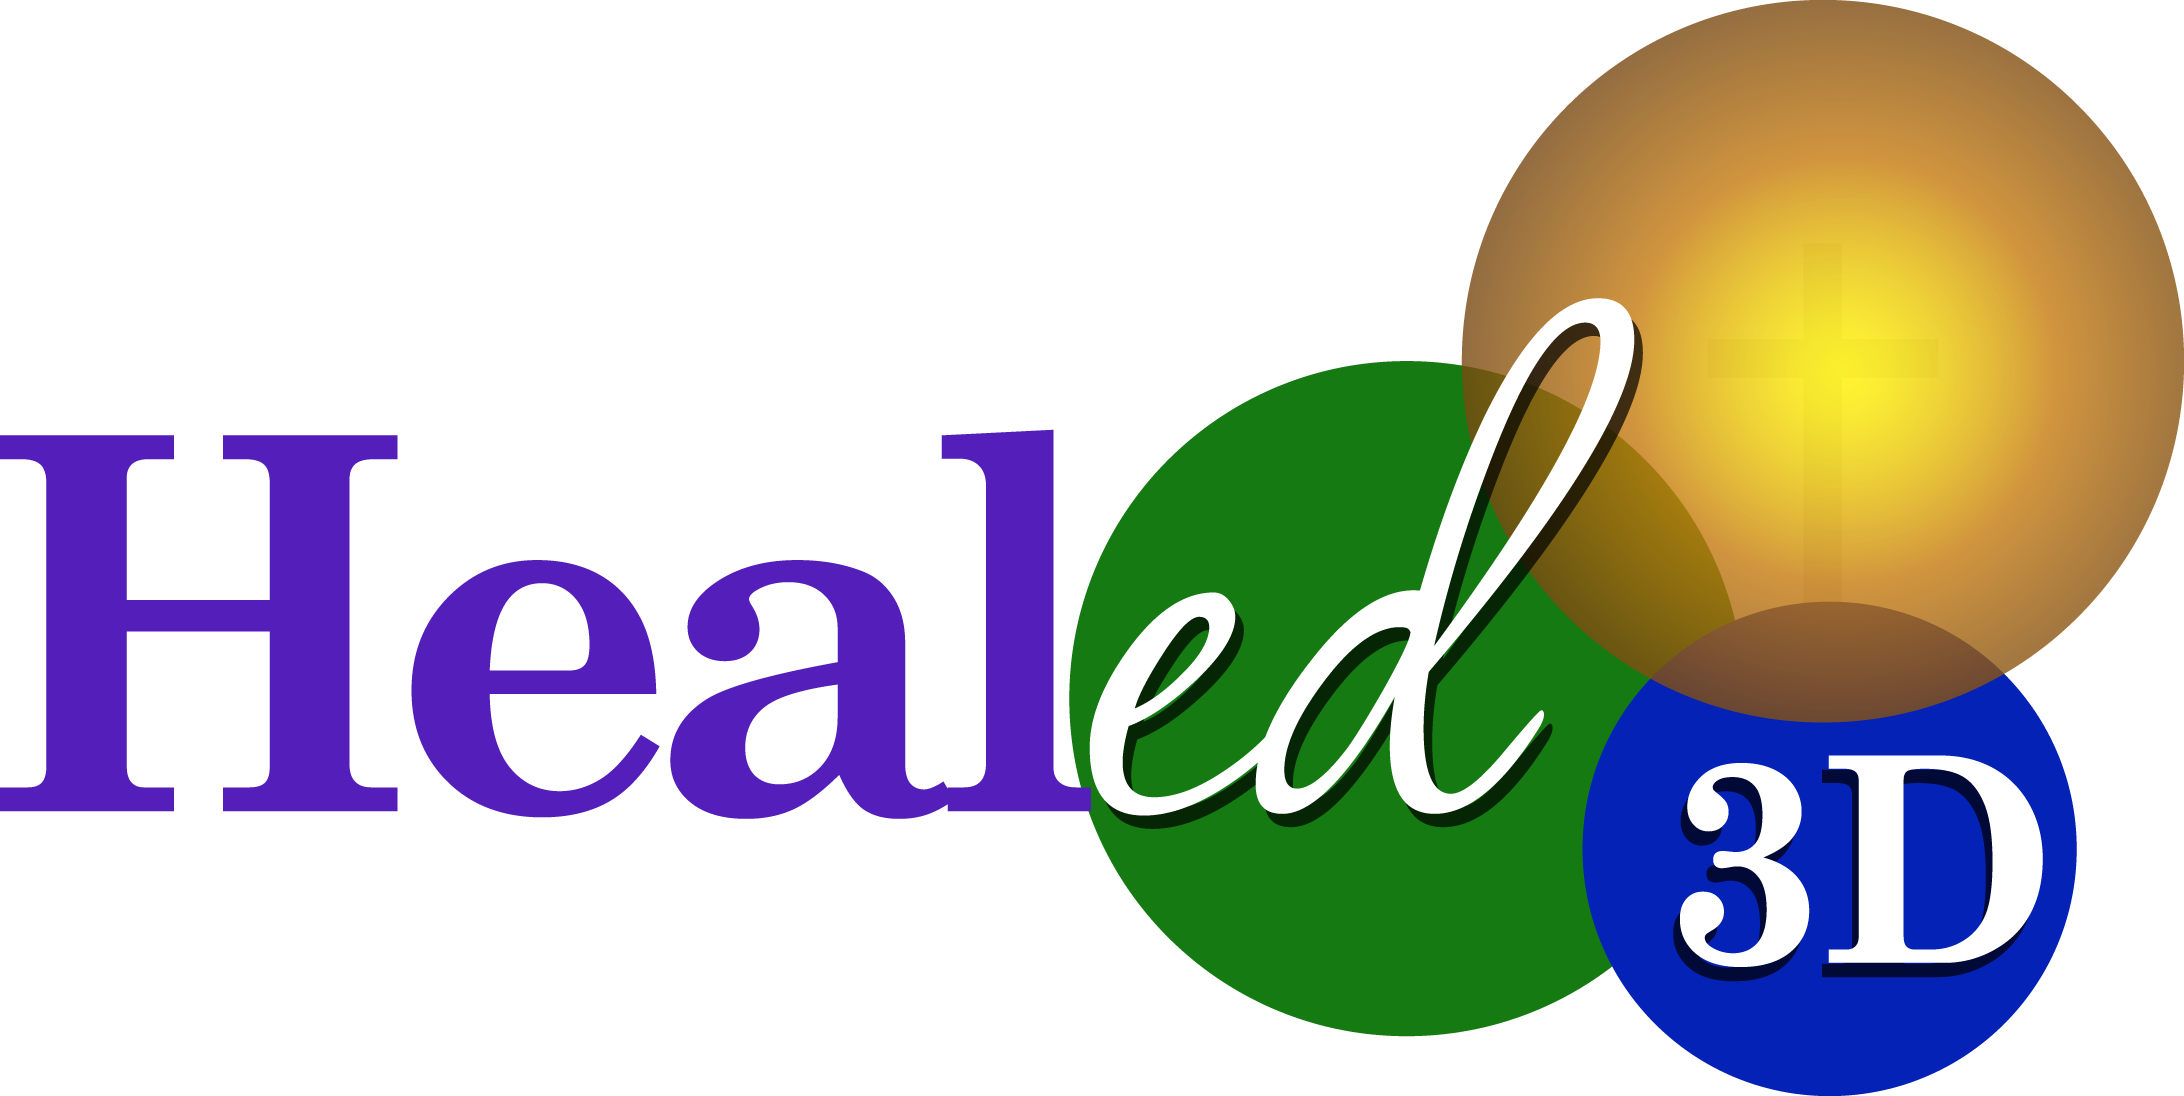 Healed3D - Helping Caregivers